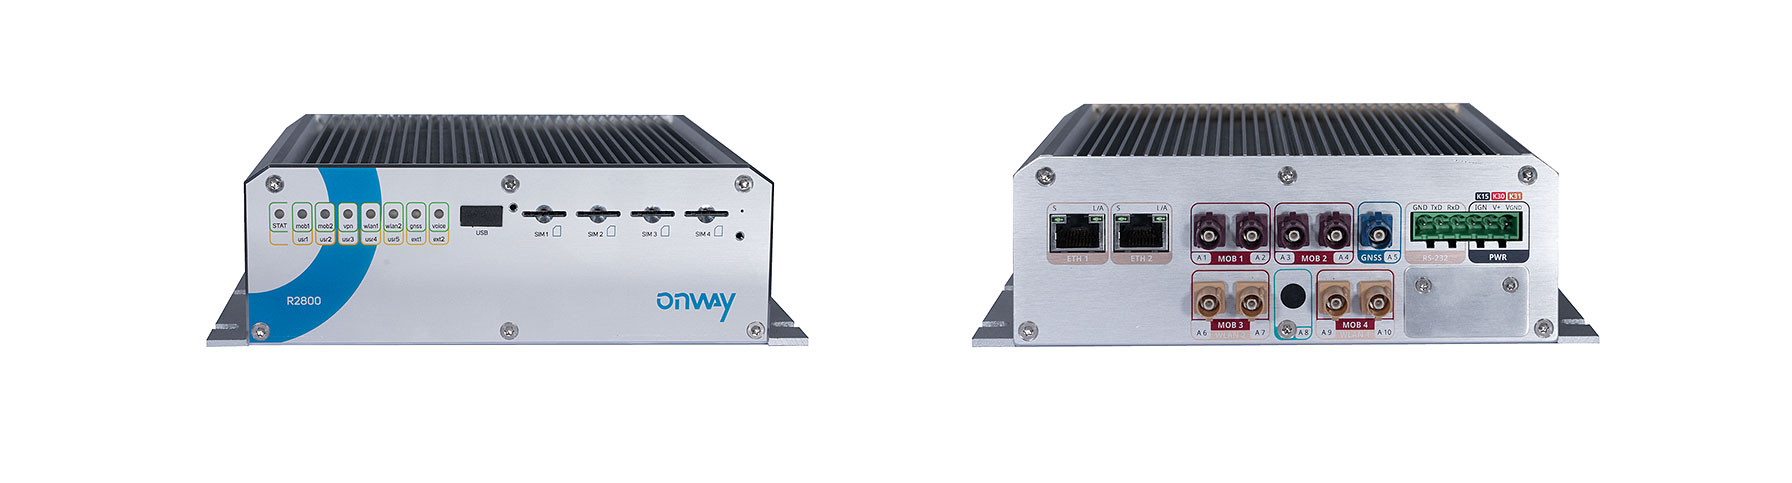 Router R2800